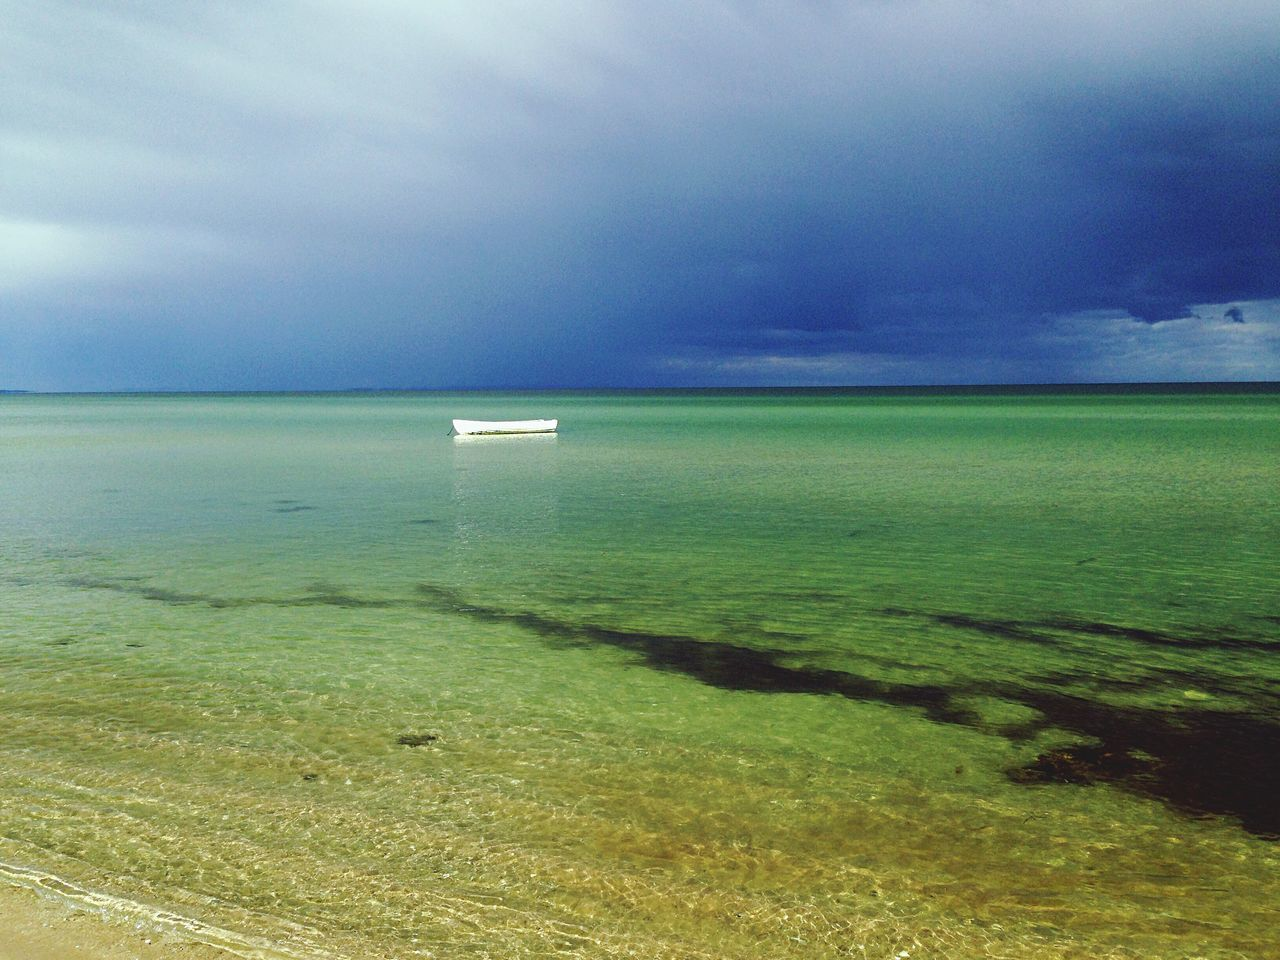 Sea Water Horizon Over Water Sky Tranquil Scene Scenics Tranquility Beach Beauty In Nature Seascape Cloud - Sky Cloud Cloudy Nature Non-urban Scene Calm Shore Blue Ocean Coastline